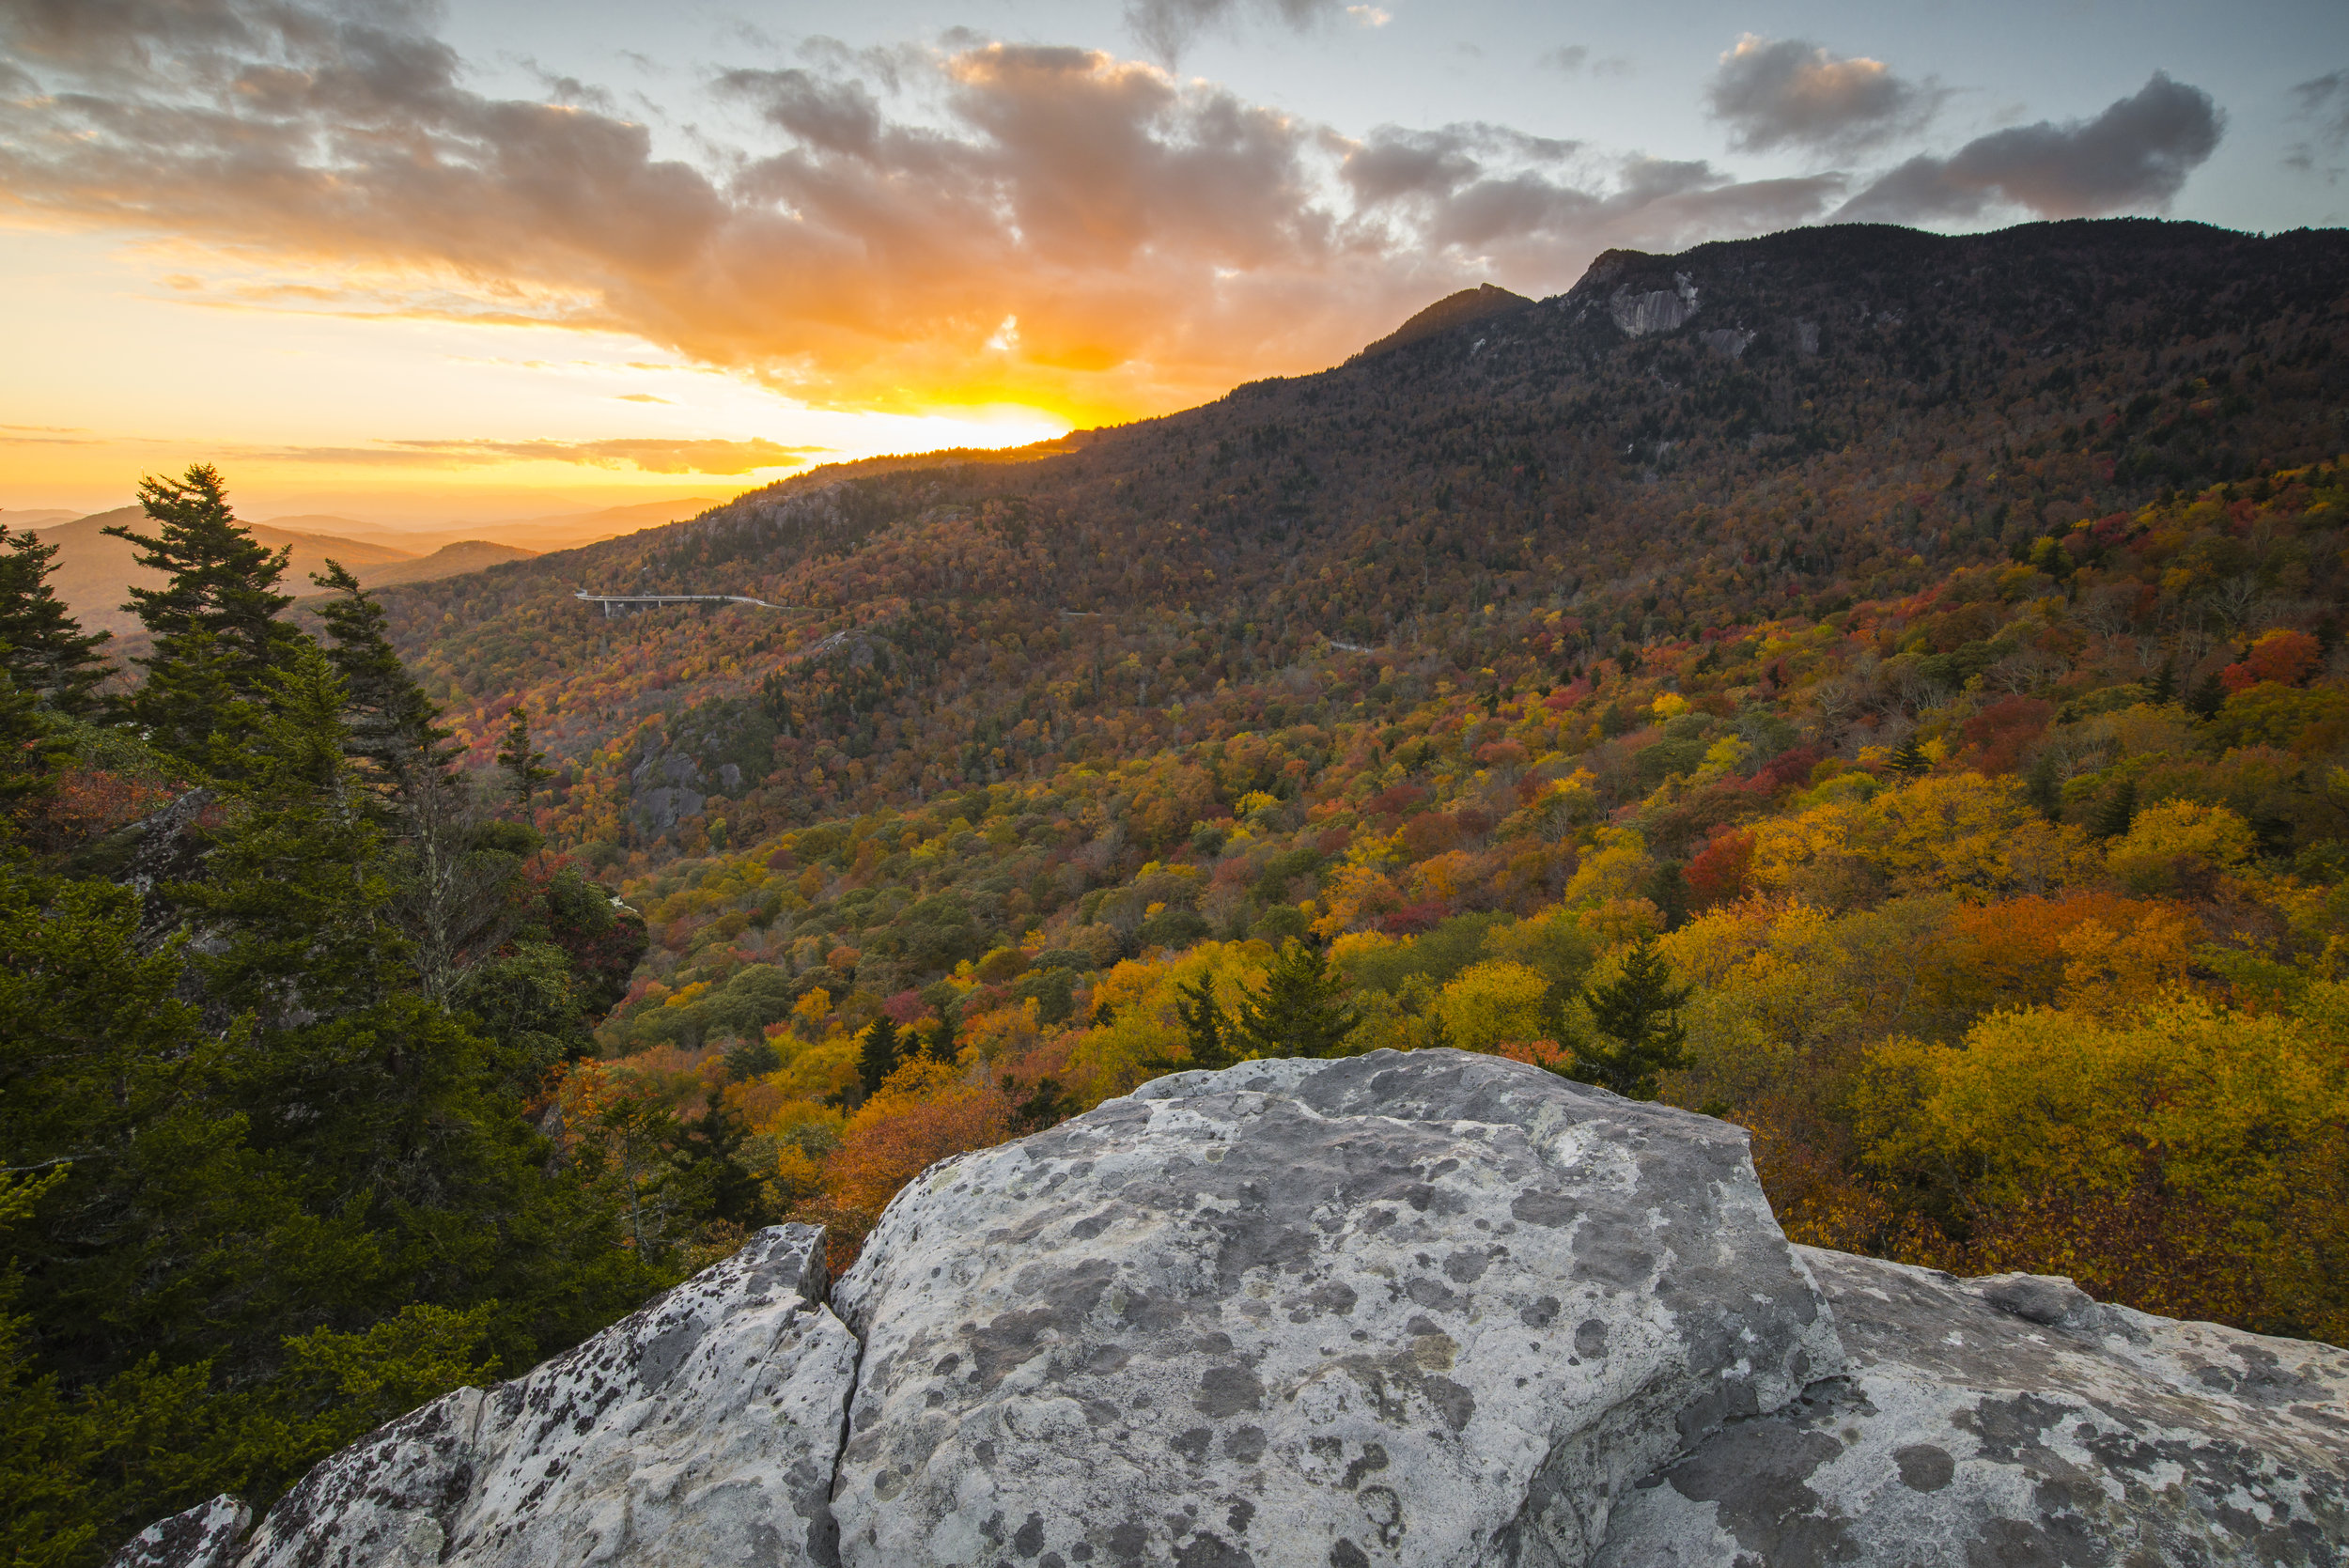 Autumn colors on Grandfather Mountain from Rough Ridge Trail, Blue Ridge Parkway, North Carolina. (Nikon D600, Nikkor 18-35G Lens, Gitzo Tripod, Circular Polarizer, 3-stop ND filter) © Jon Reaves Photography